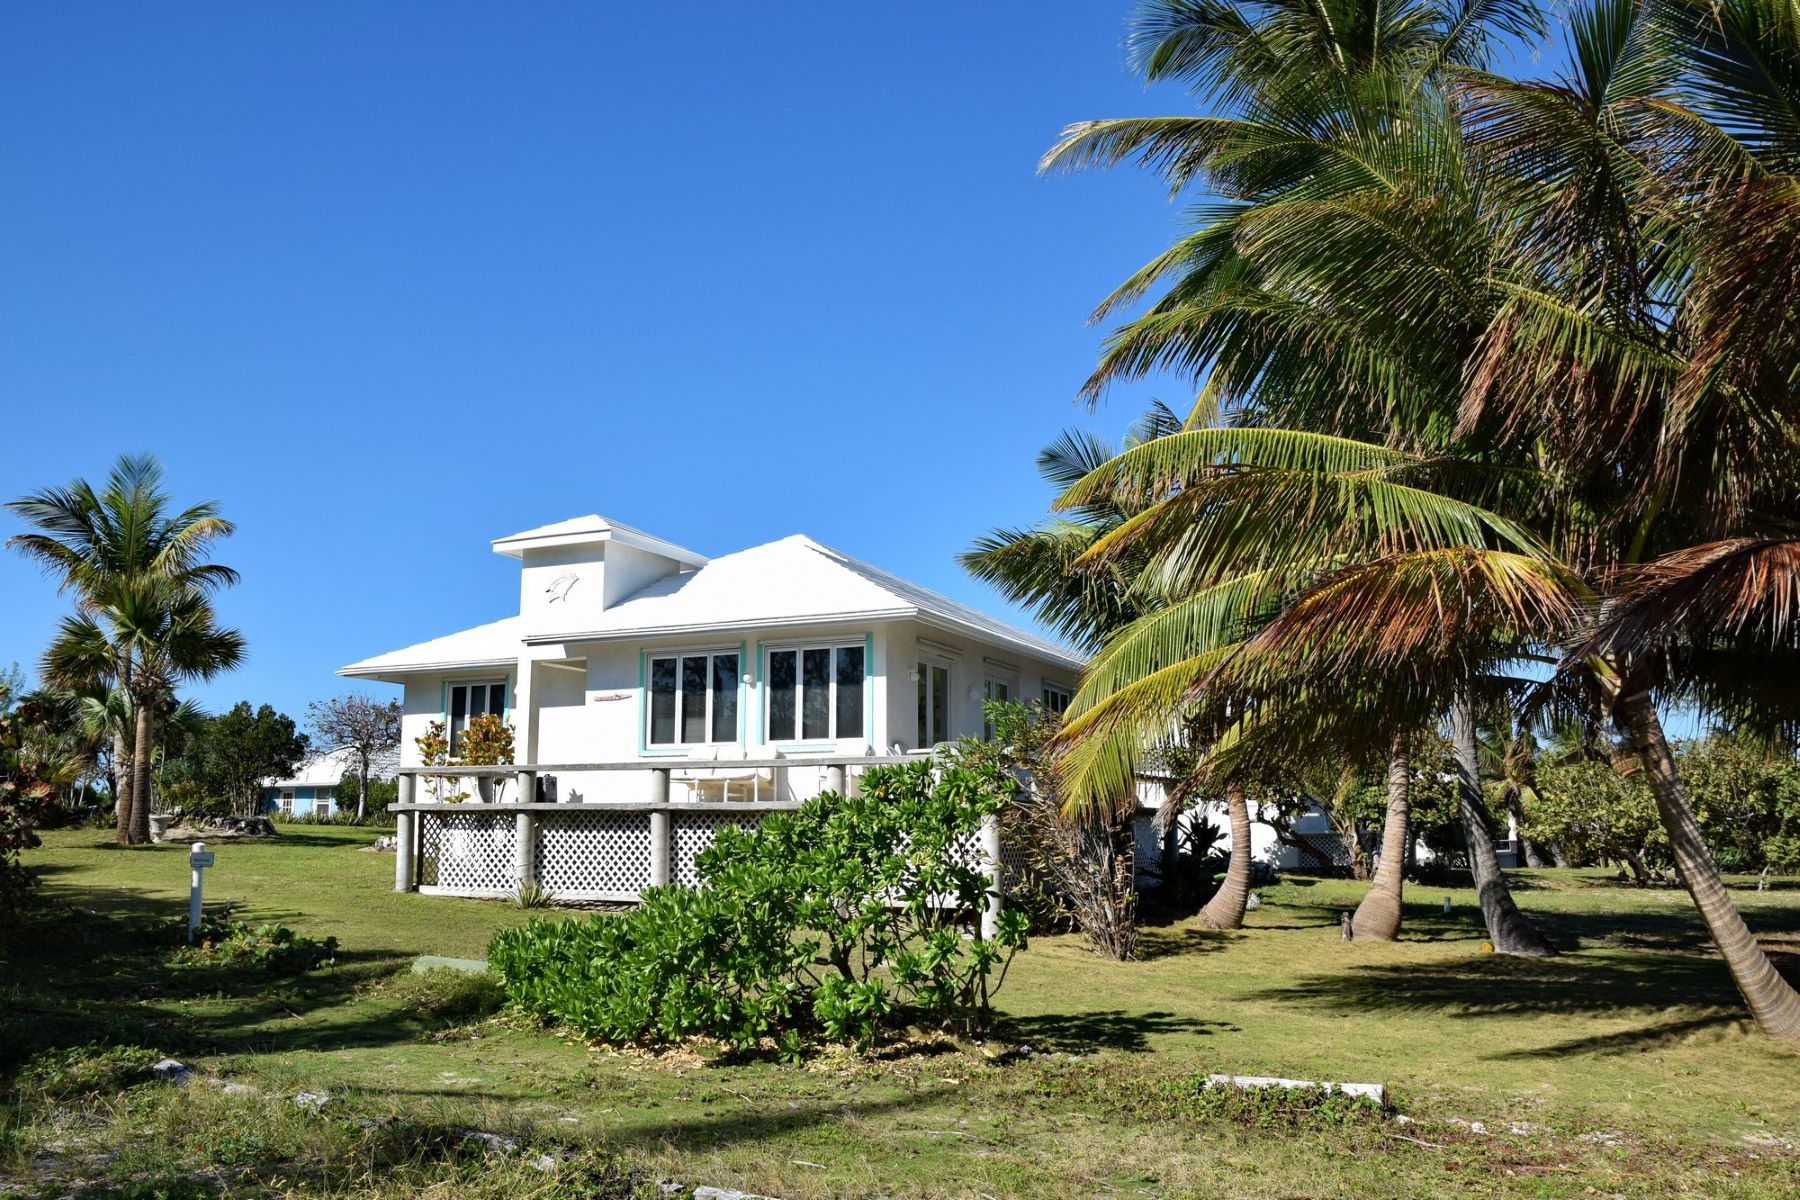 Single Family Home for Sale at Sea Shell Cottage Green Turtle Cay, Abaco Bahamas